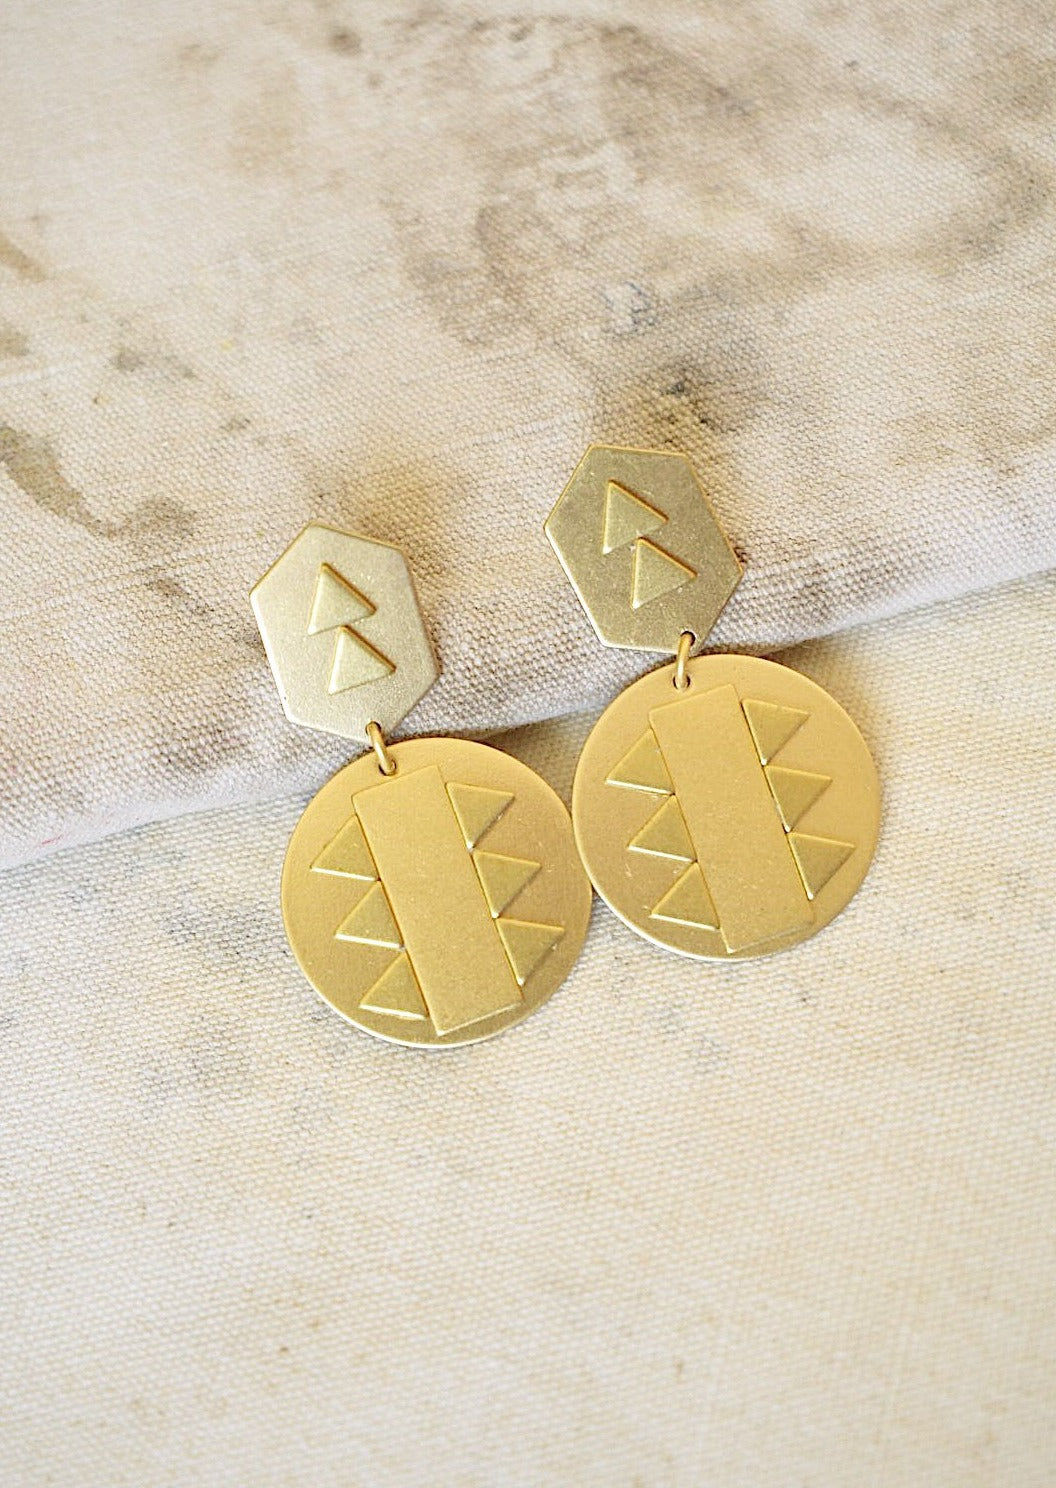 Brass Post Earrings with Tribal Geo Designs